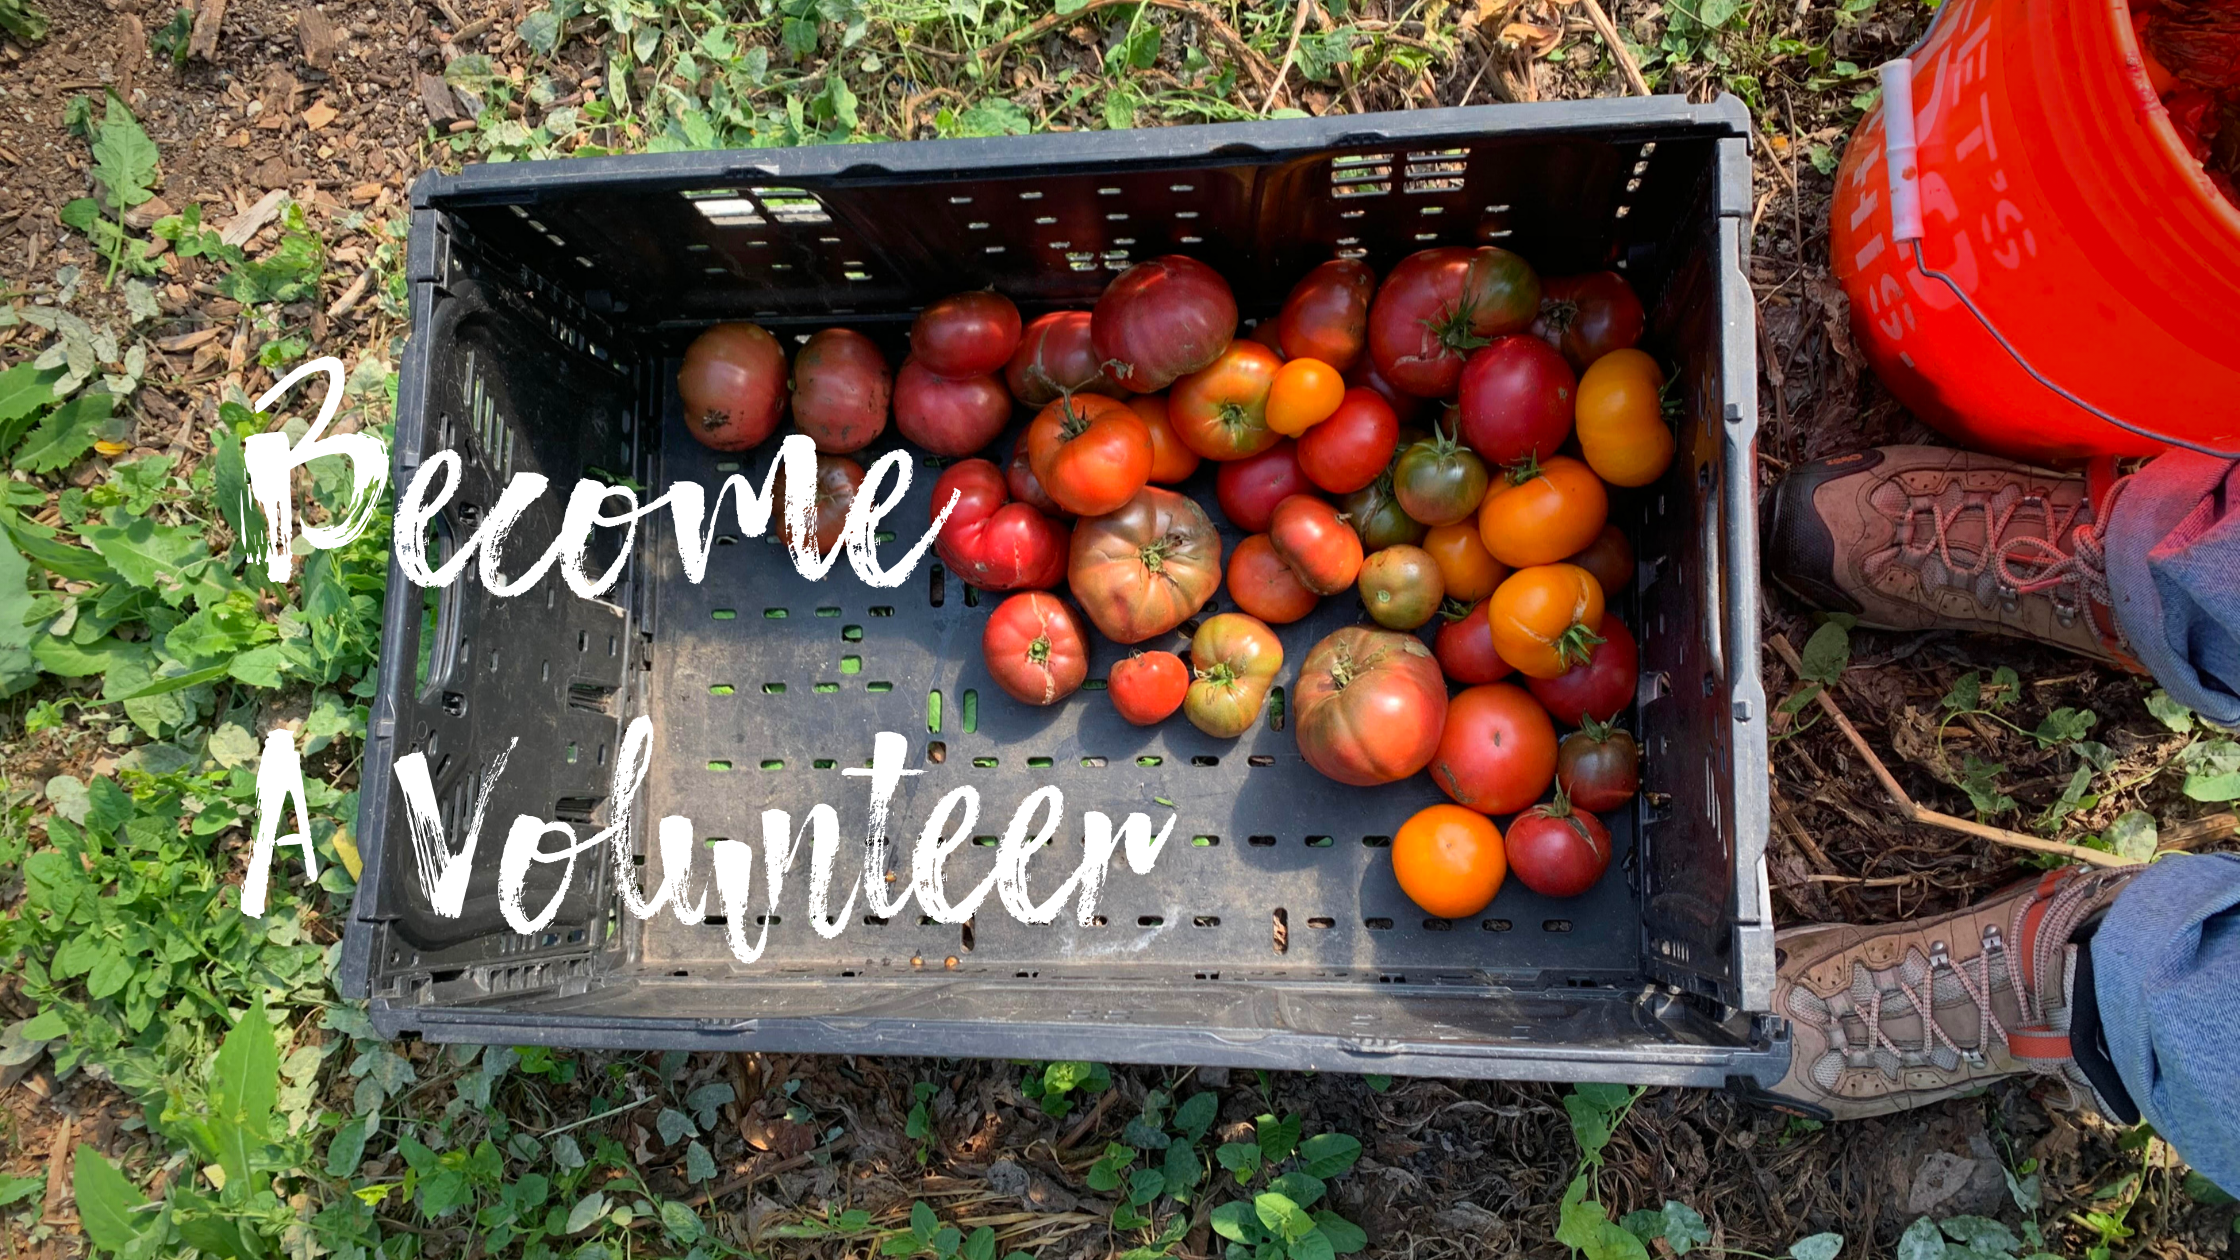 Fill out one of the applications below if you would like to become a community gardener with urban growers collective in 2021! (5)